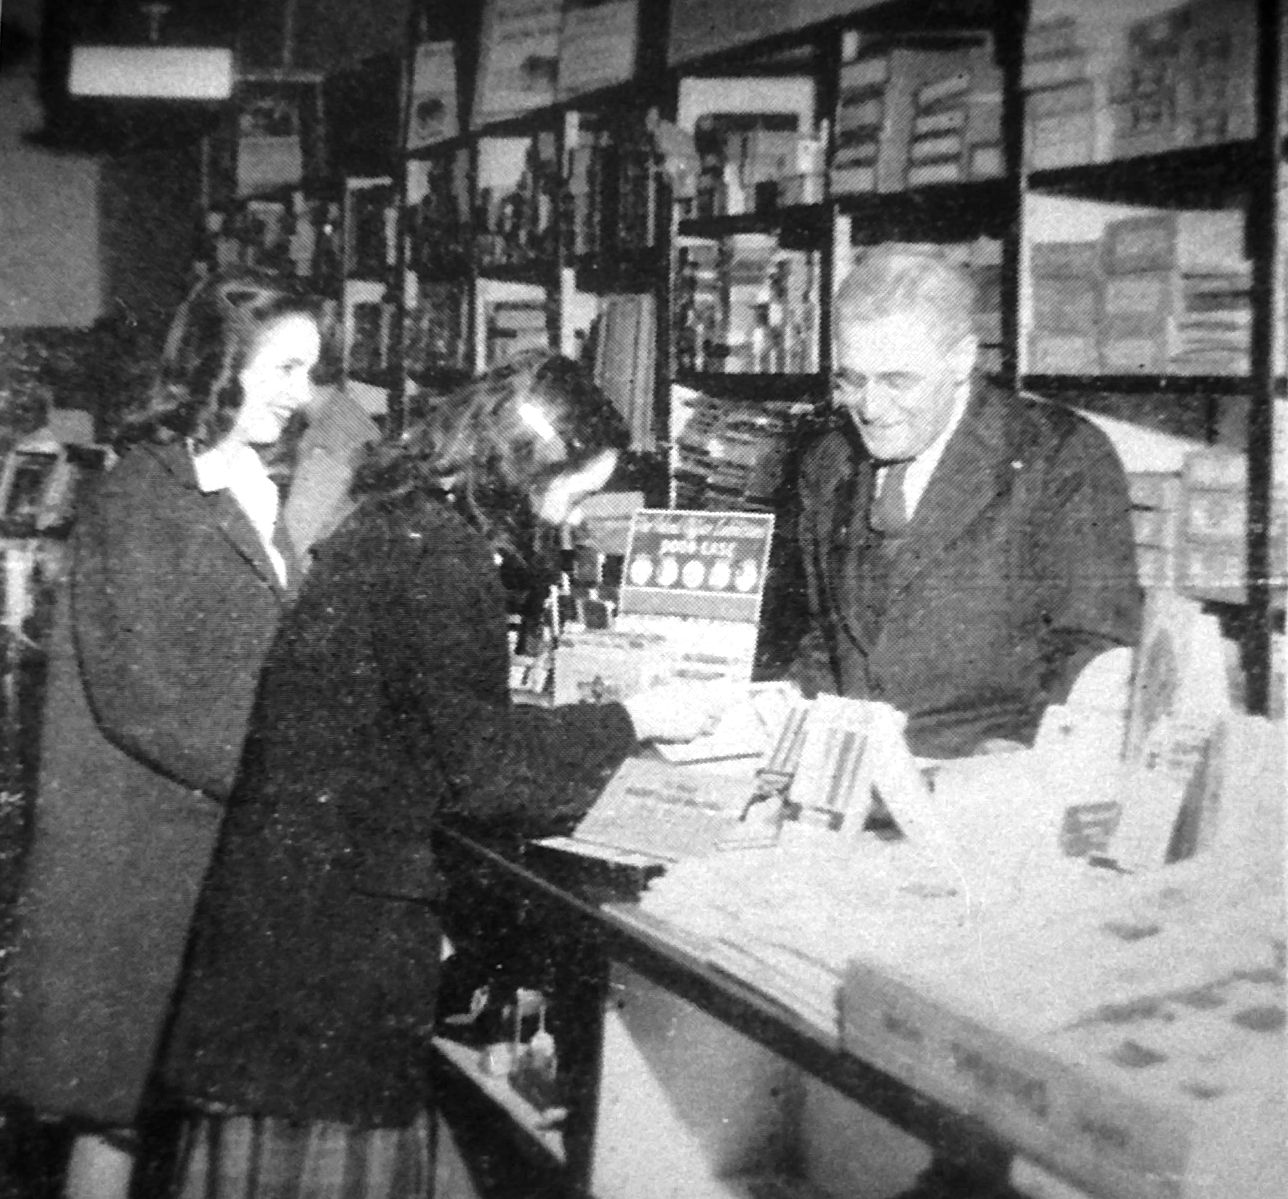 1946_Office_Outfitters, N Main st.jpg 1,288×1,199 pixels